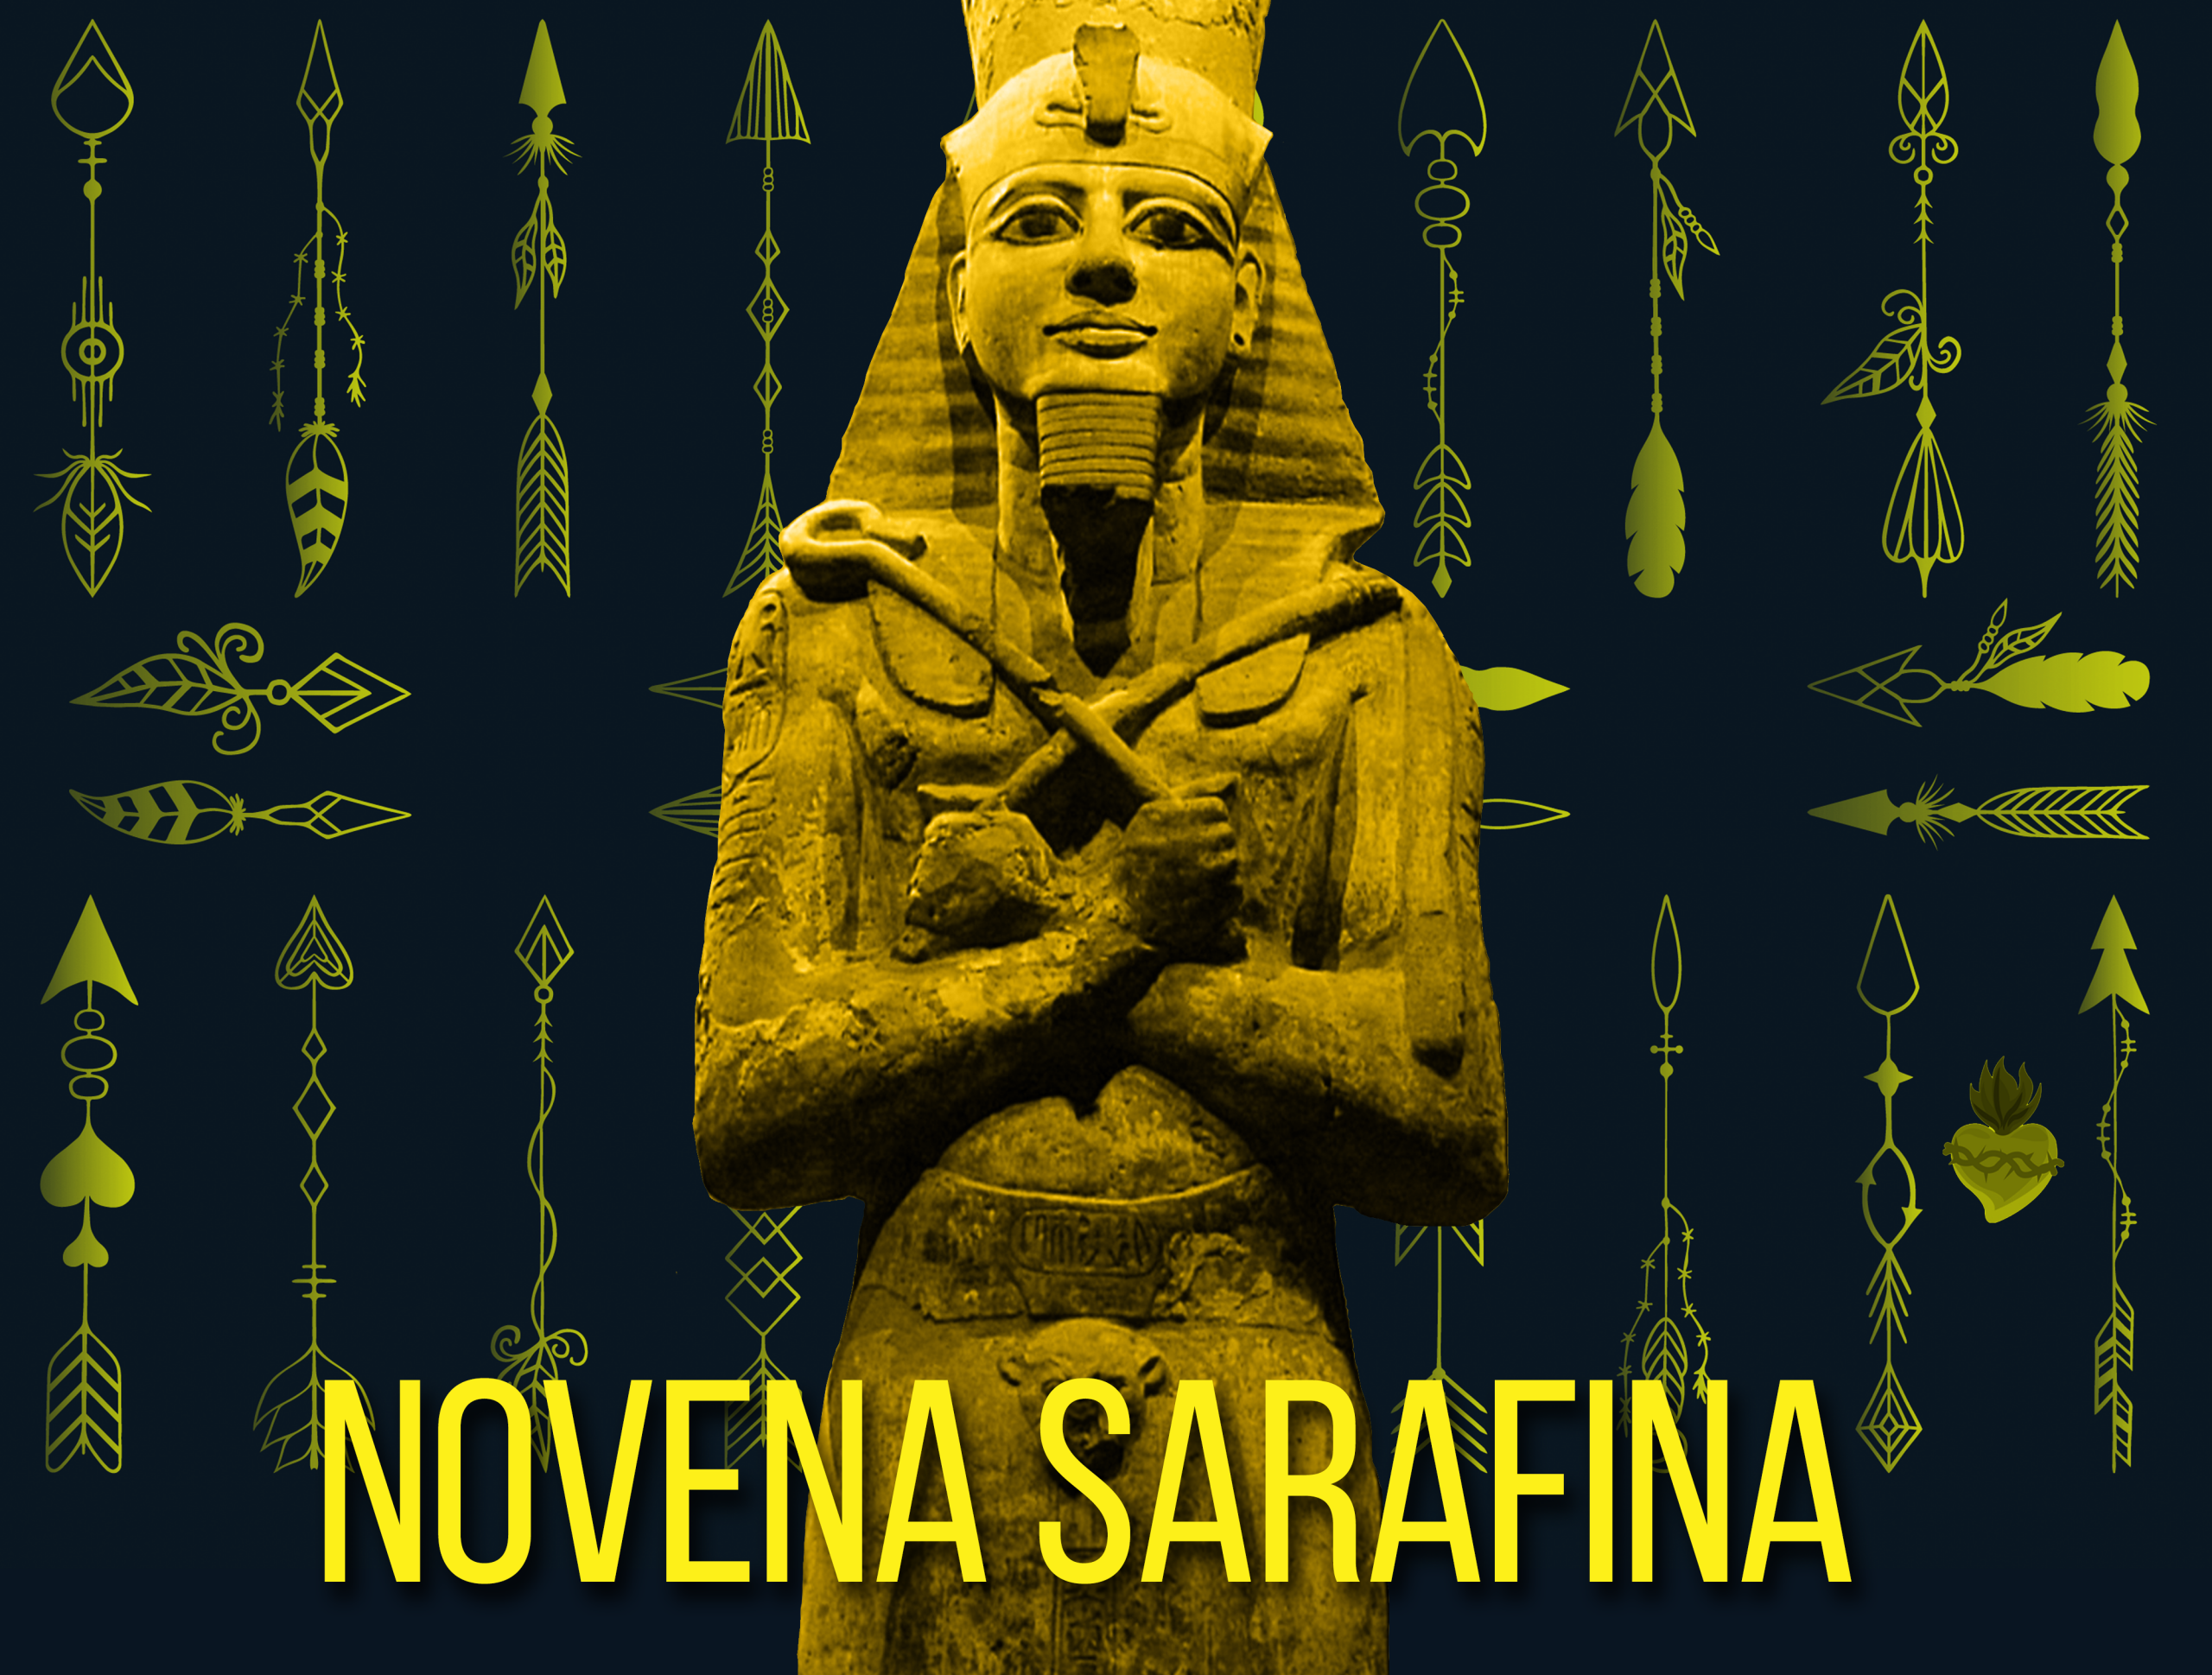 Novena Sarafina! The first song on Farmers & Artists